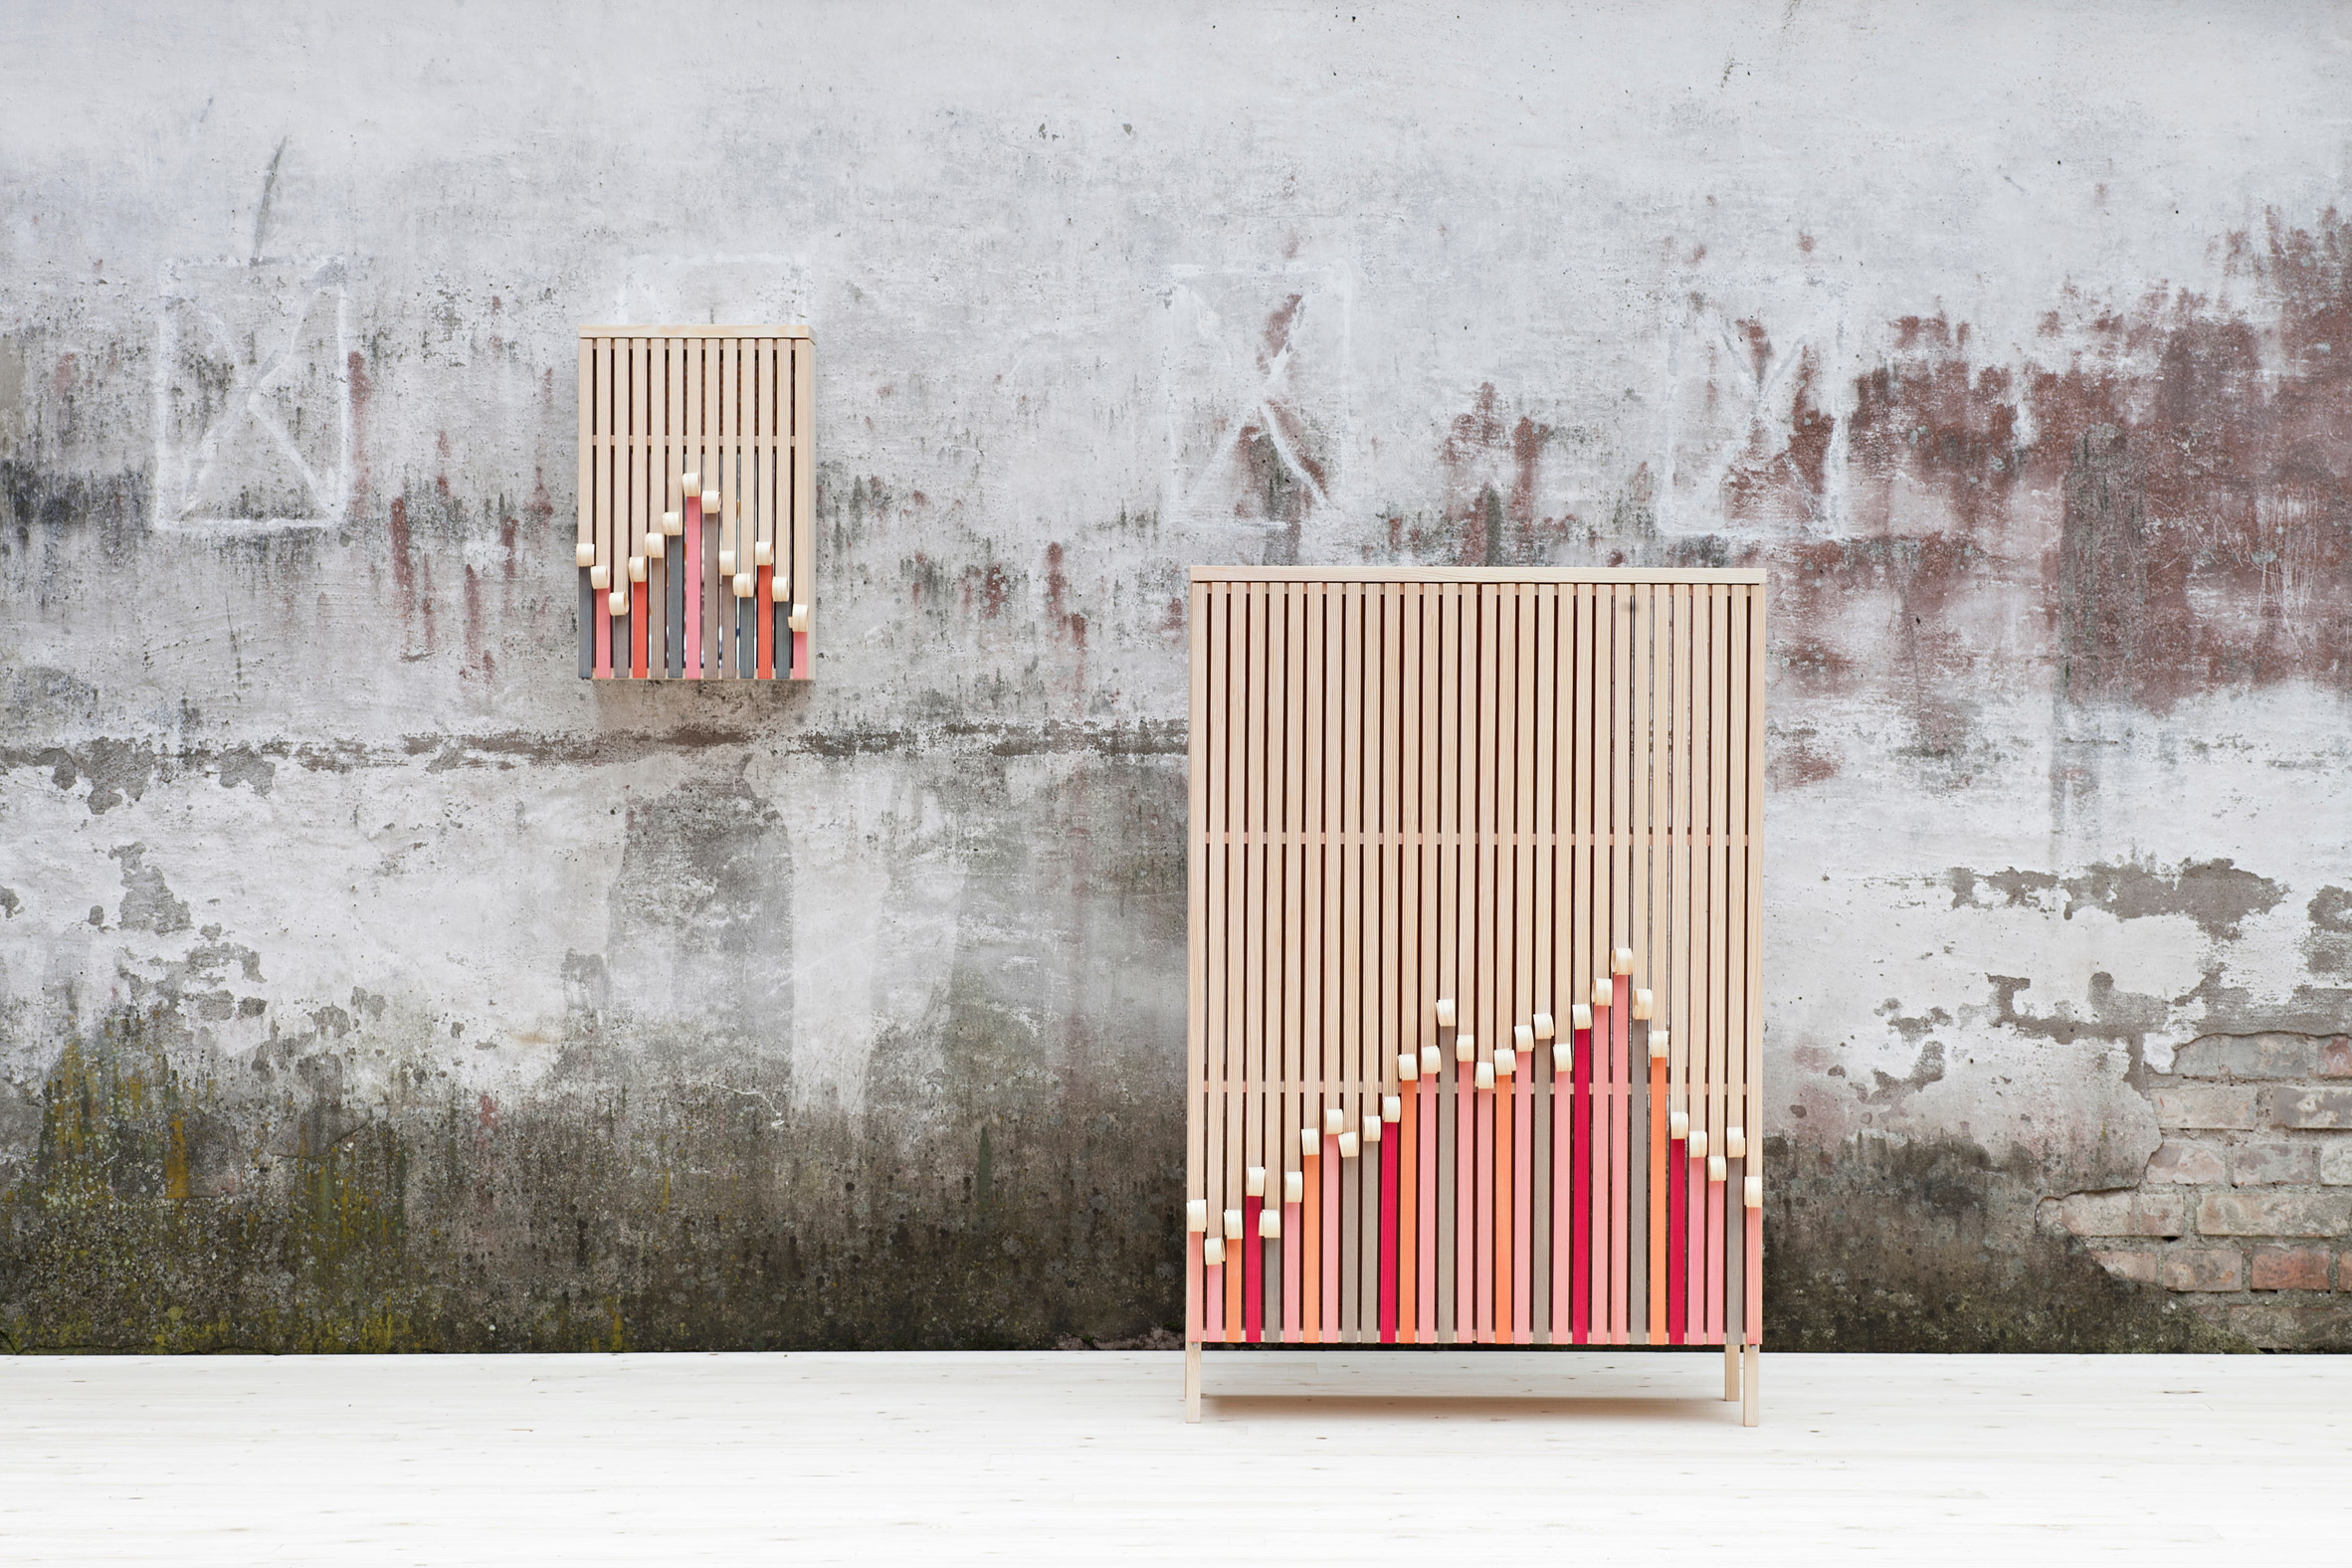 Stoft designs wooden cabinets that peel away over time